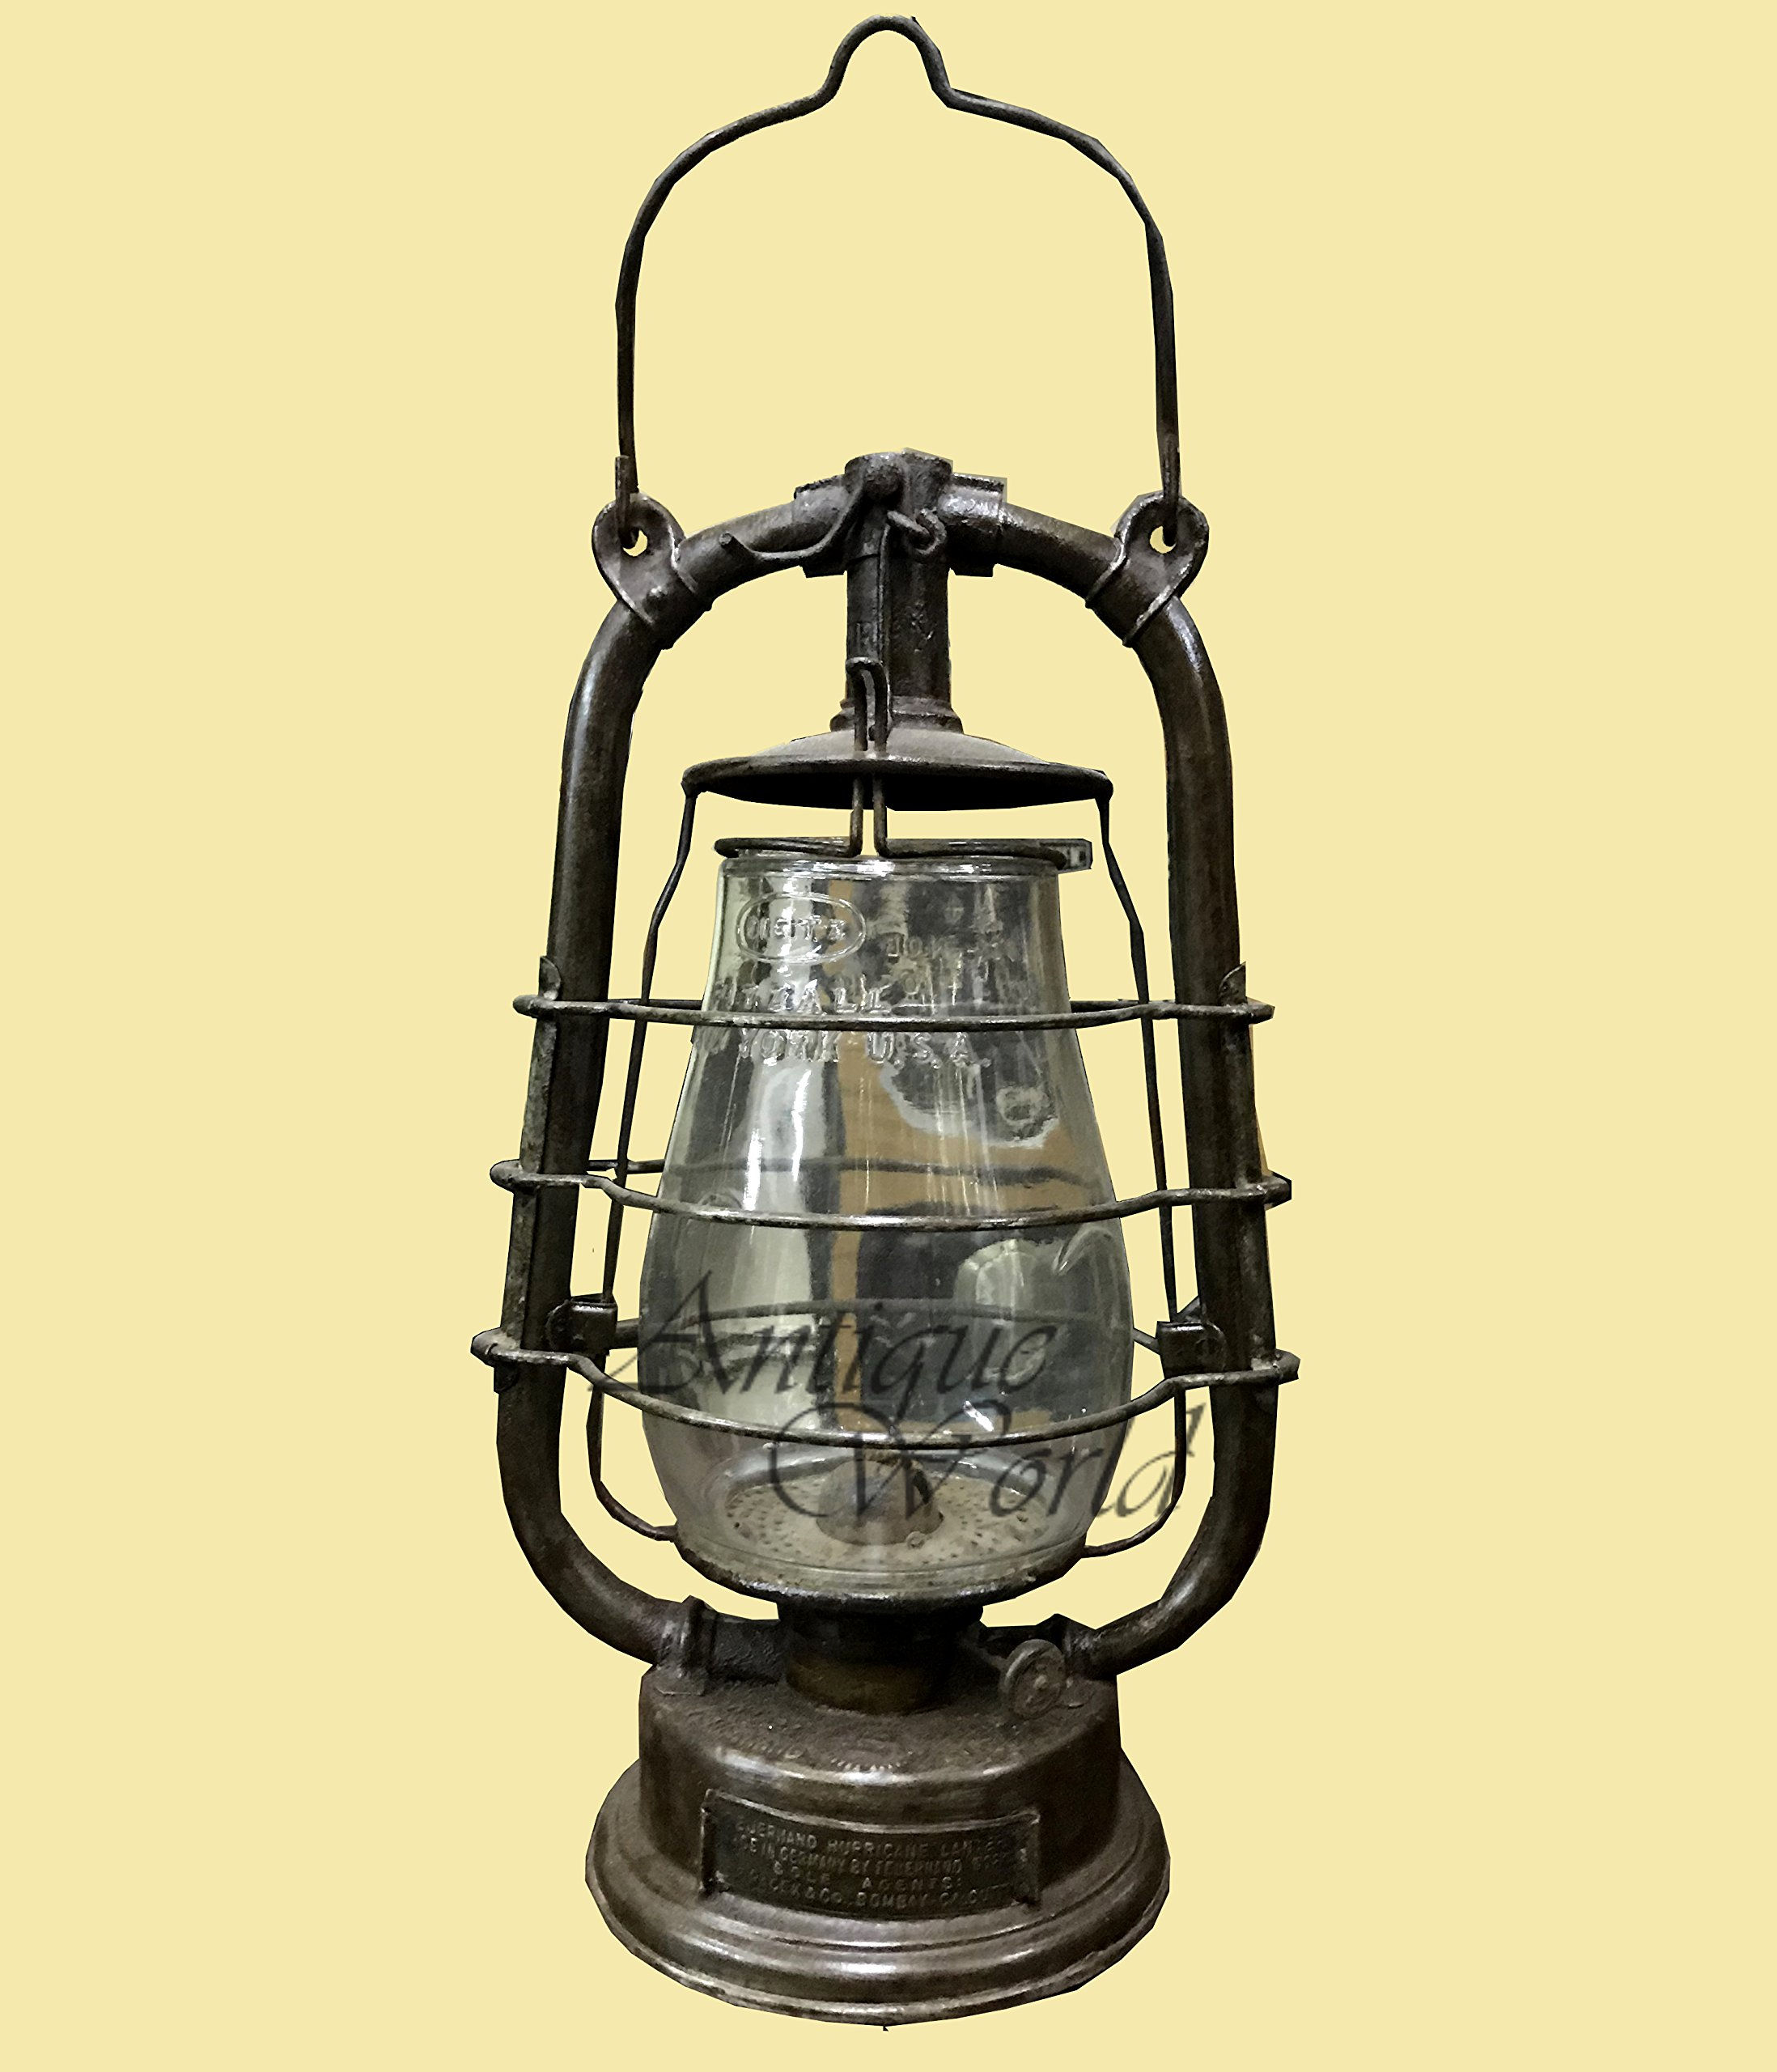 Antiques World Feuerhand Hurricane Vintage Lamps & Lantern Made In Germany In Antique Collectibles, Lamps, Lighting, Lamps And Non Electric Oil Lamps AWUSAHB 0167